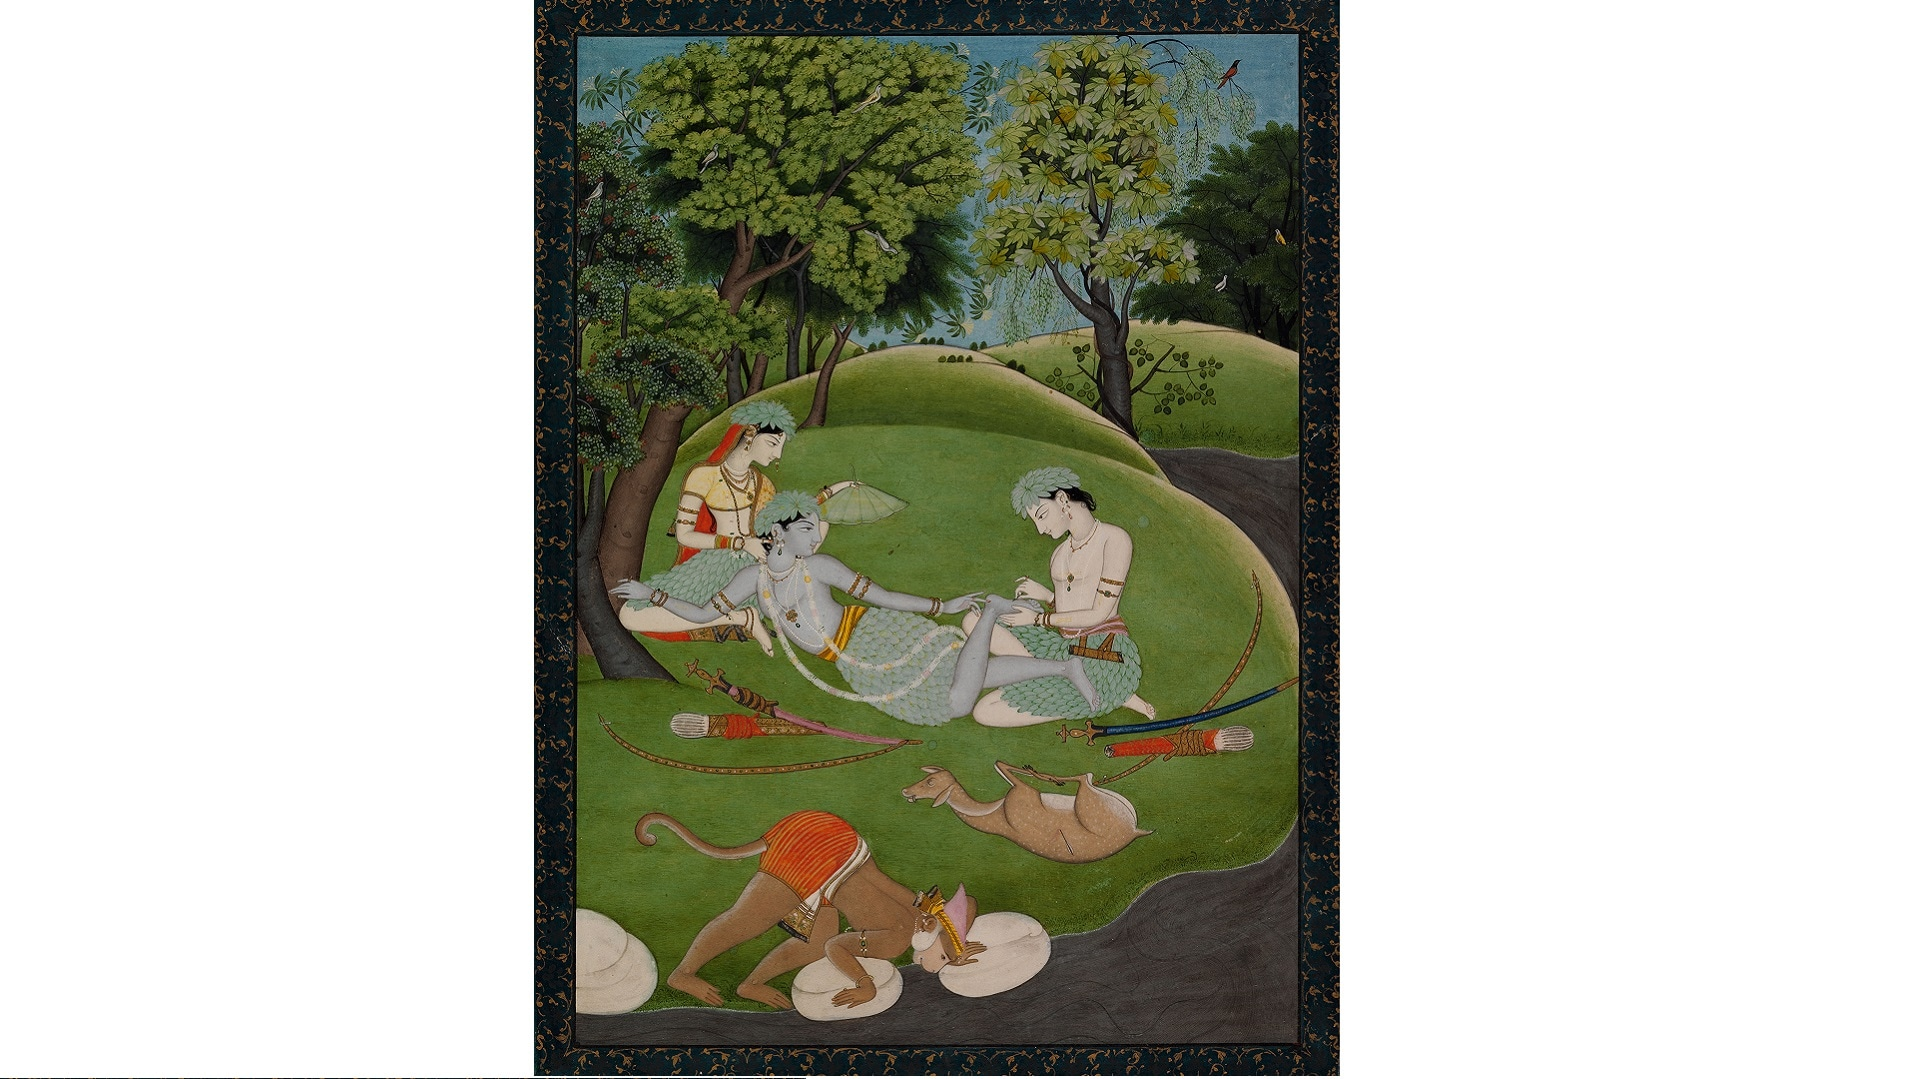 16. Rama, Sita and Lakeshmana Begin their Life in the Forest